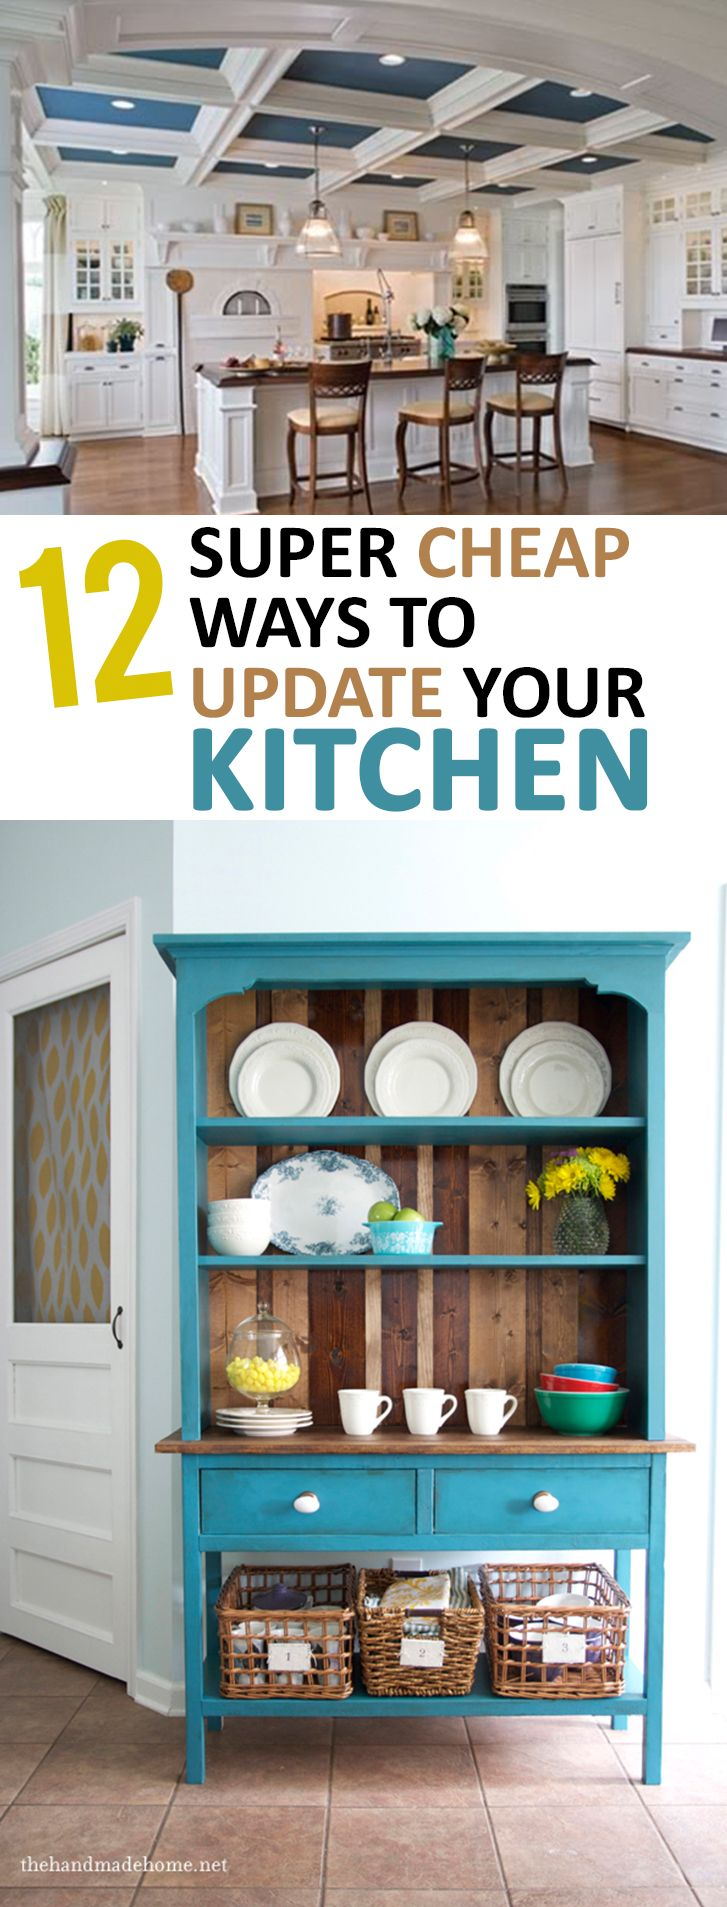 12 Ways To Update Your Kitchen Cheap Kitchen Updatescheap Kitchen Remodelkitchen